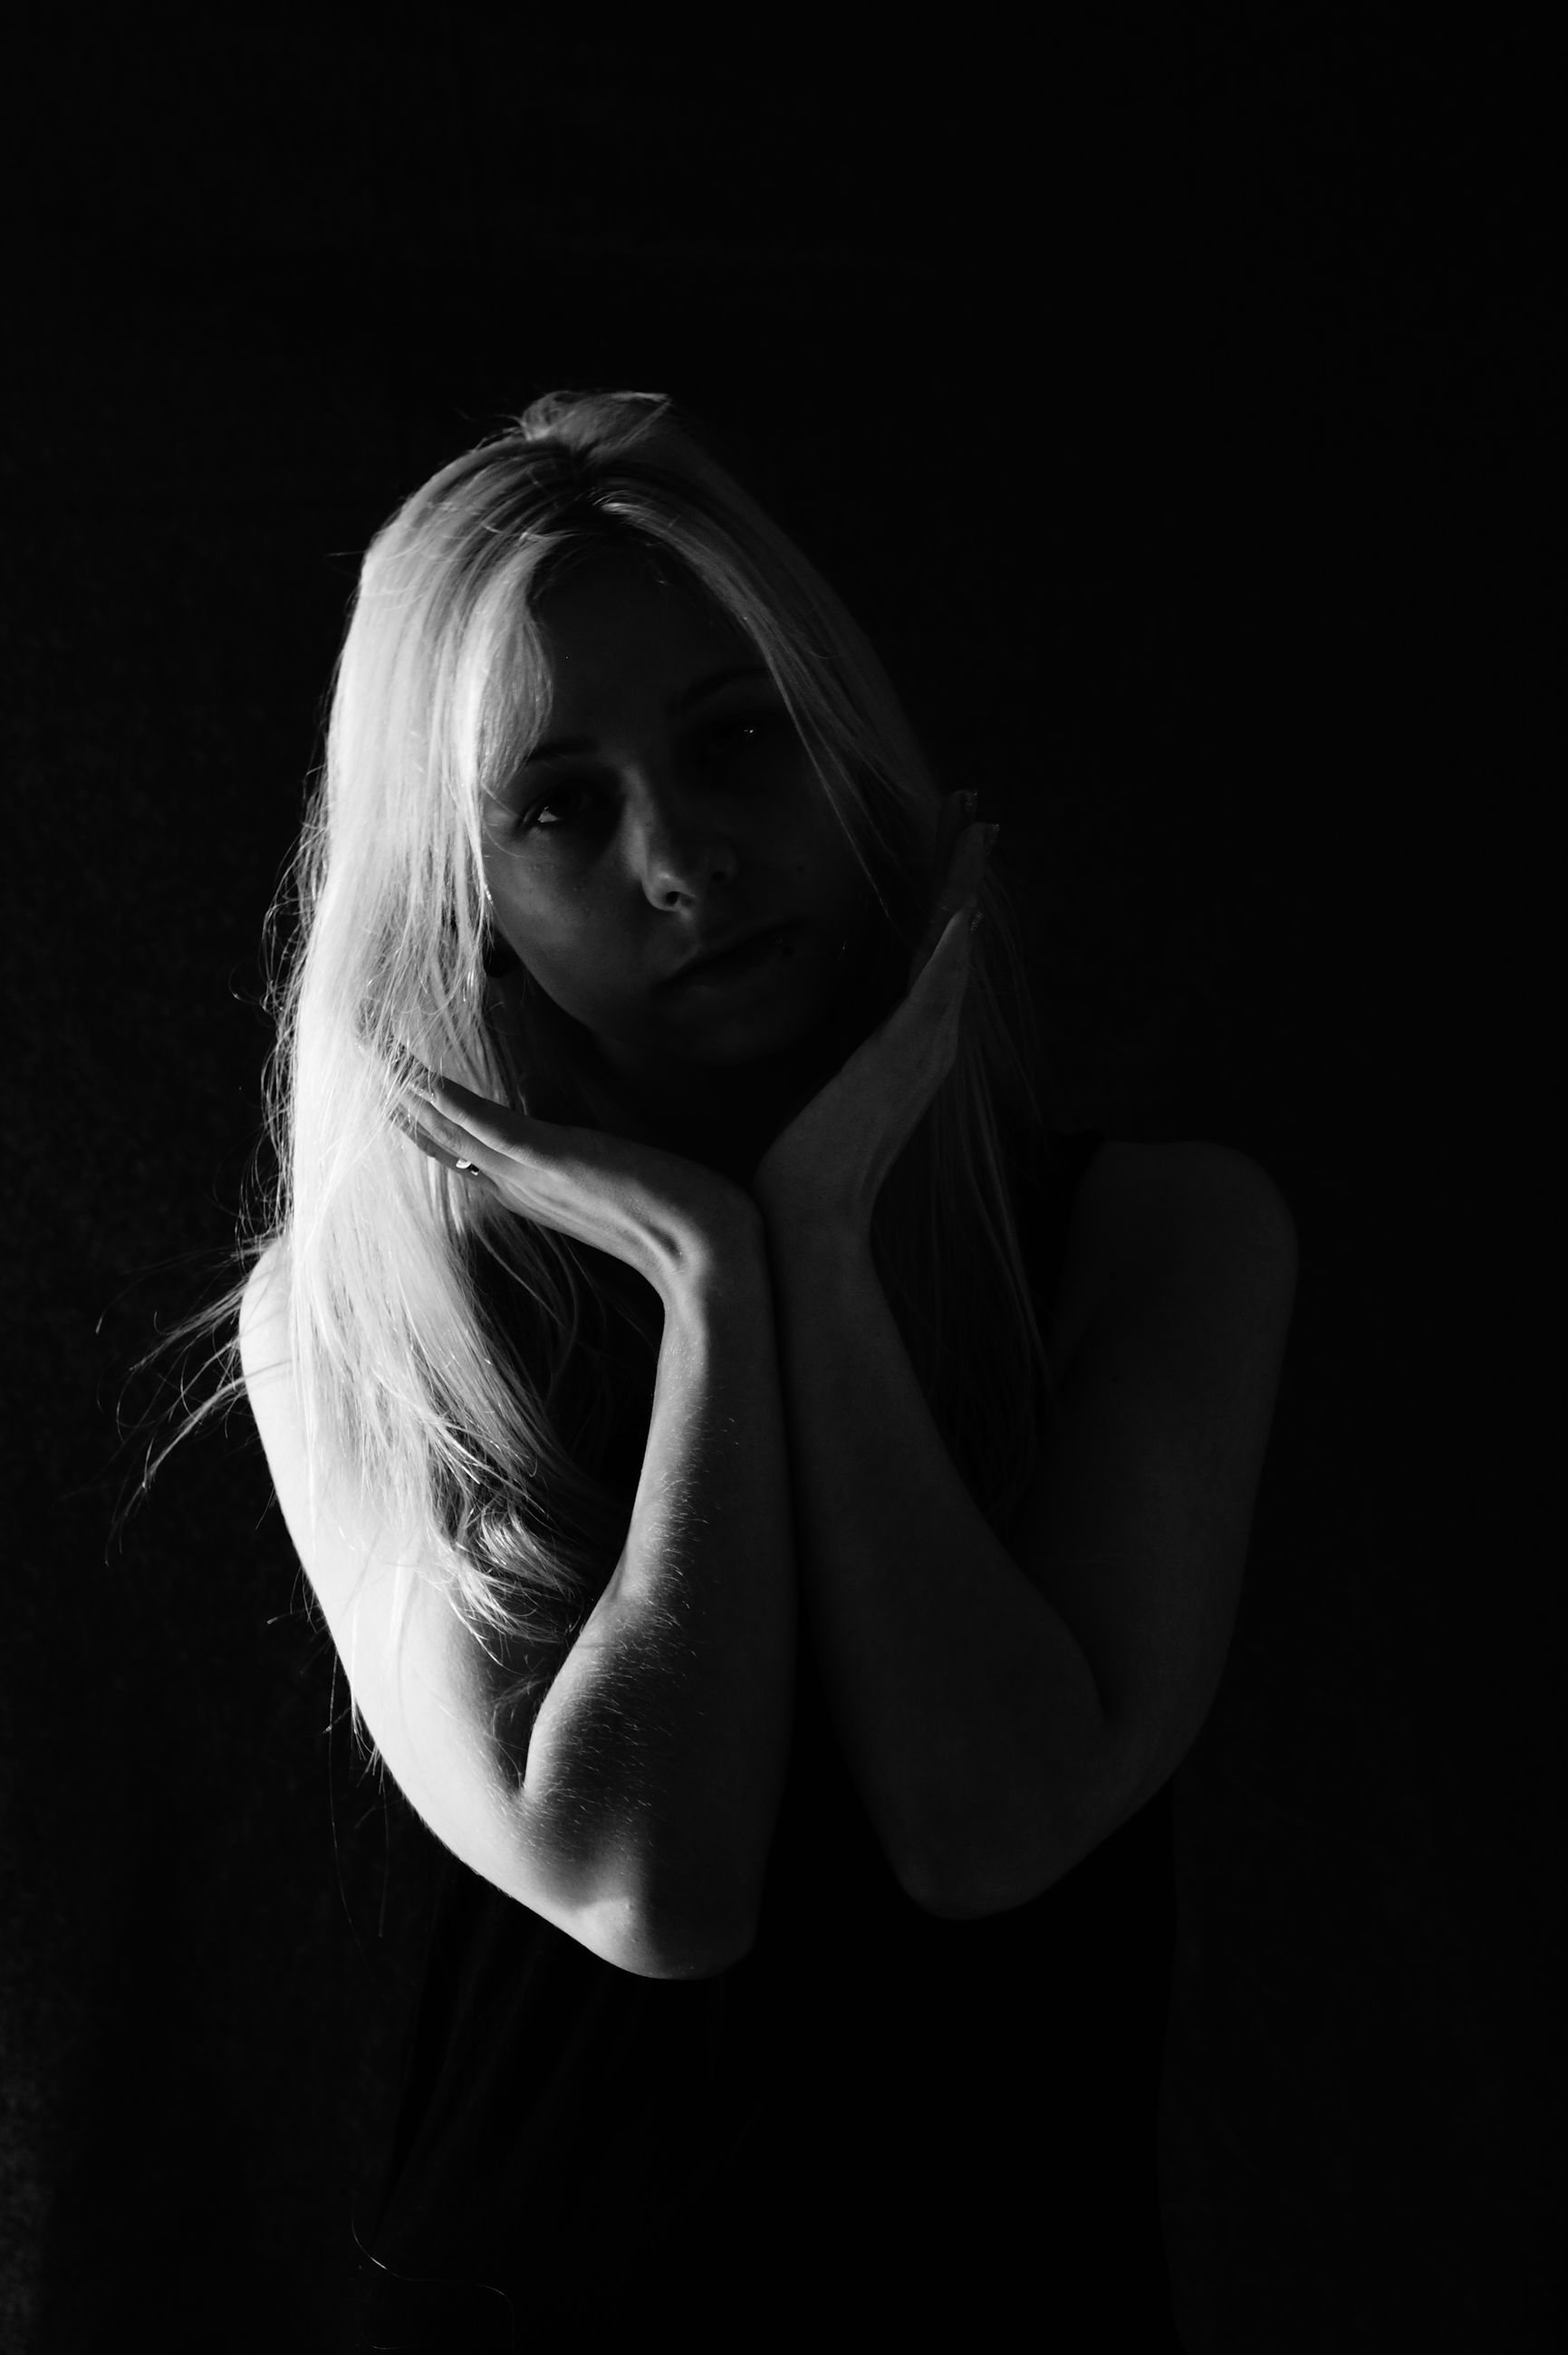 Portrait of a beautiful young woman gesturing against black background